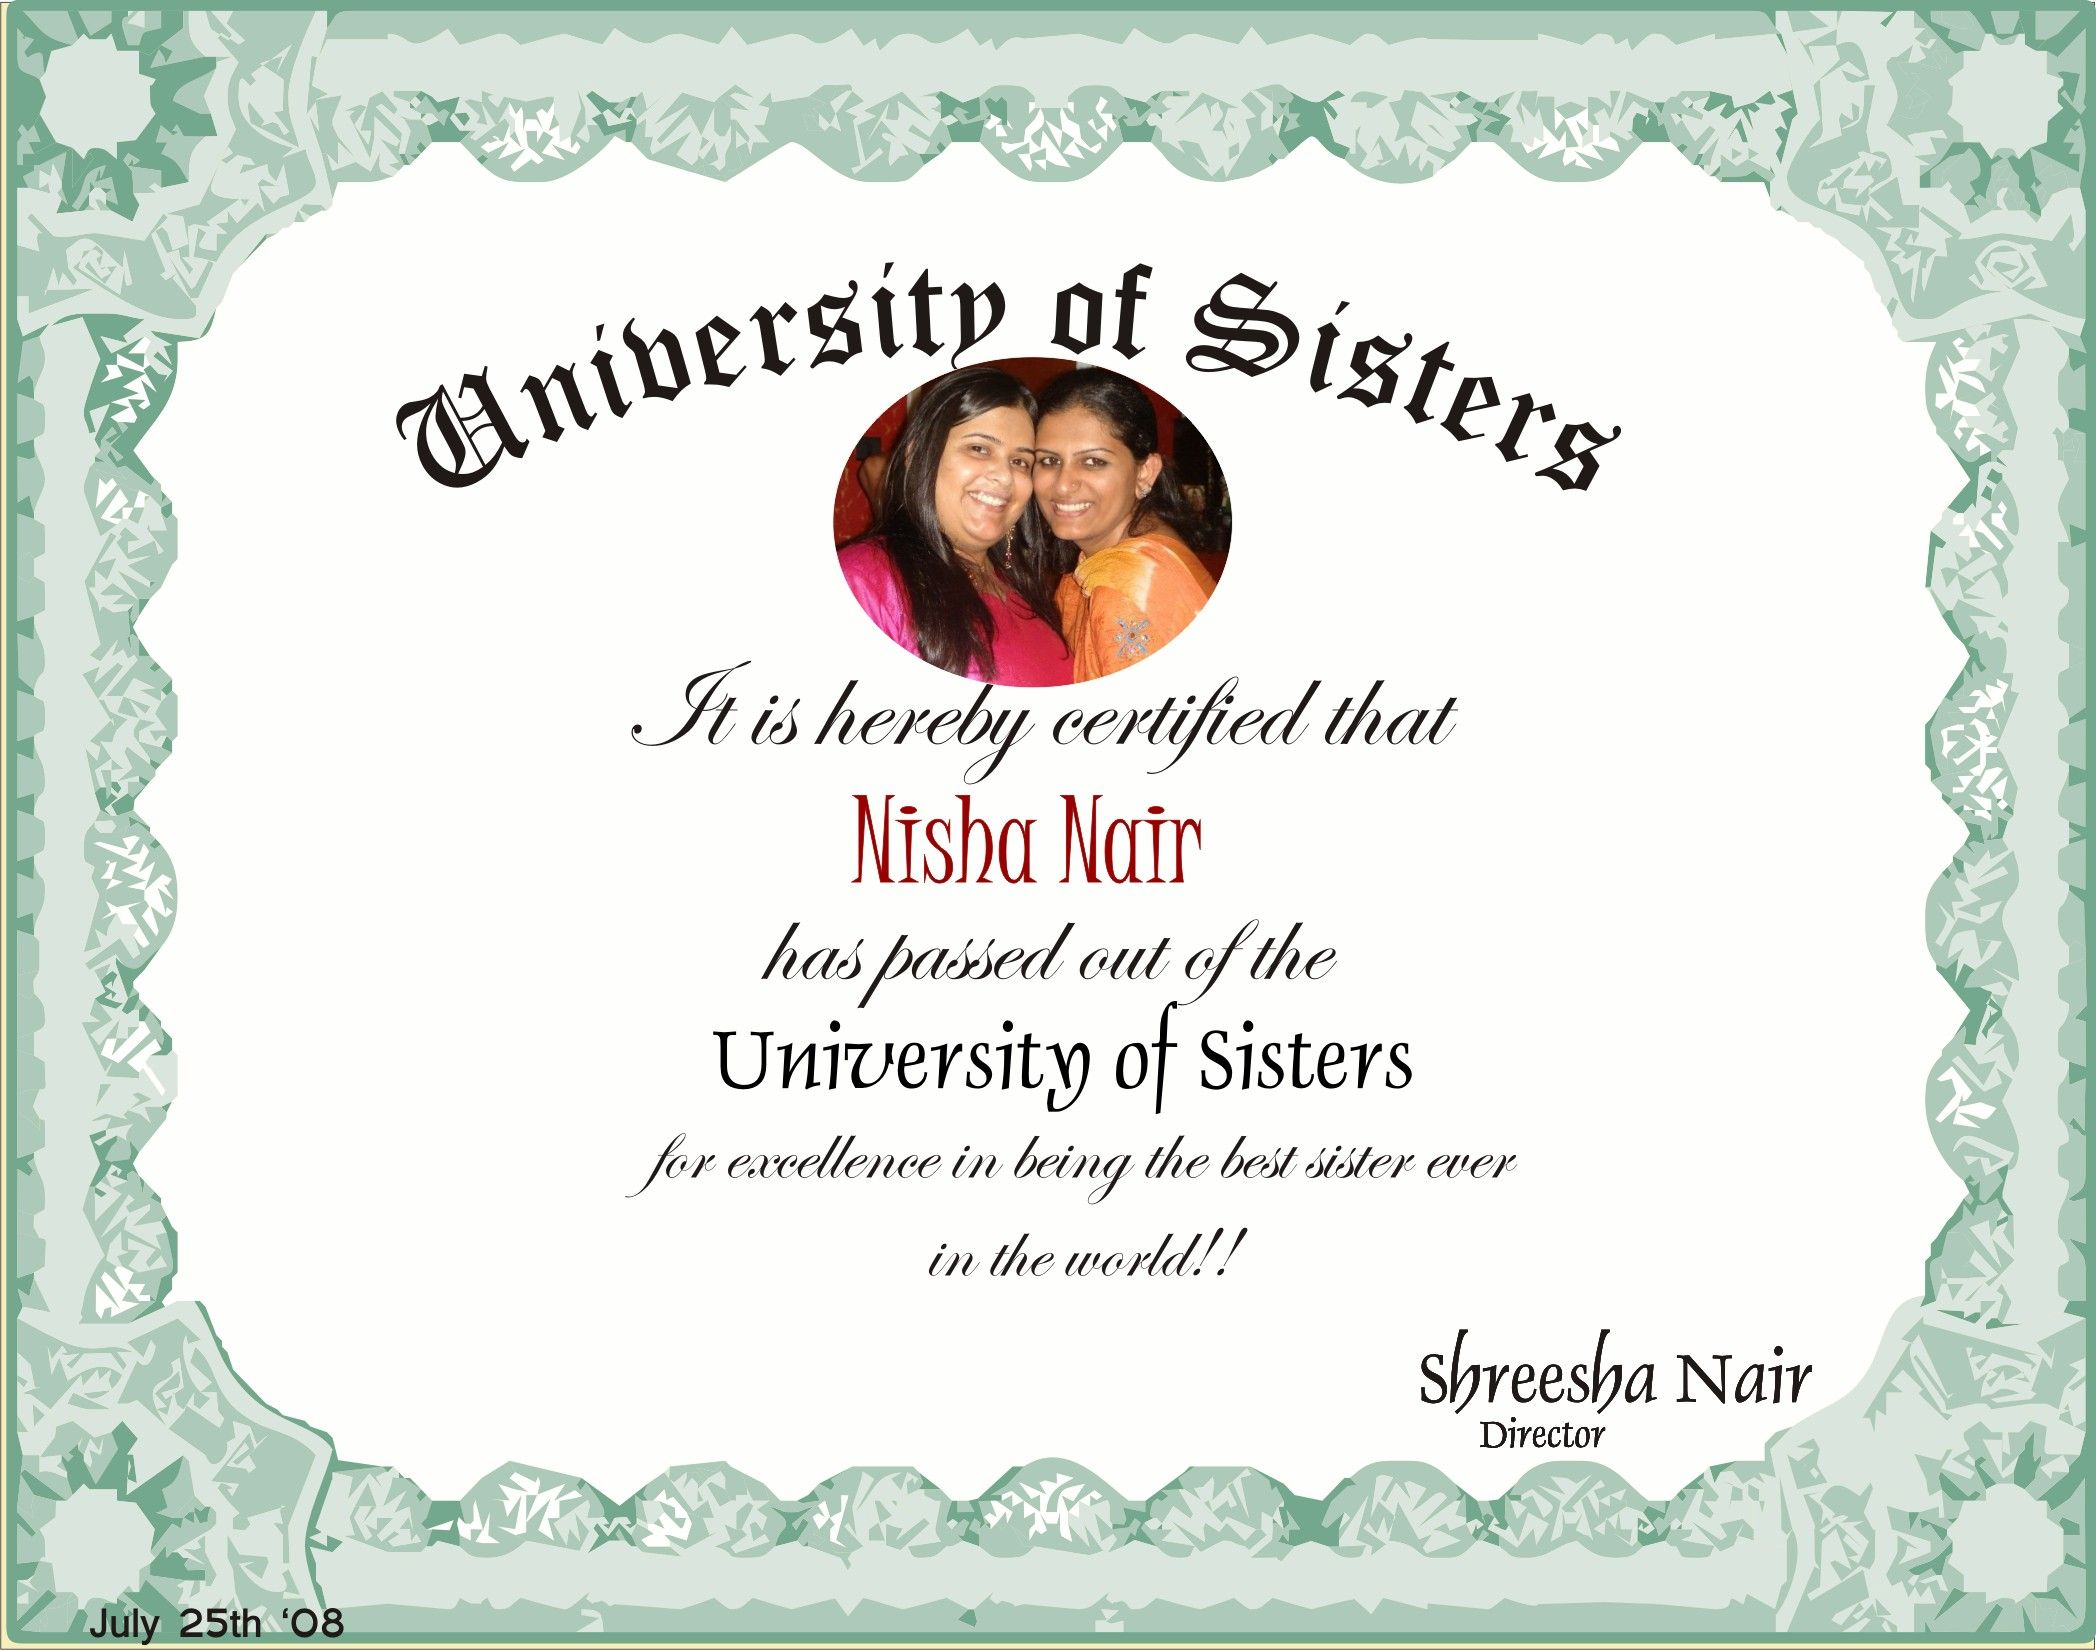 Customized Certificate For Your Sister Declaring Her The Super Best